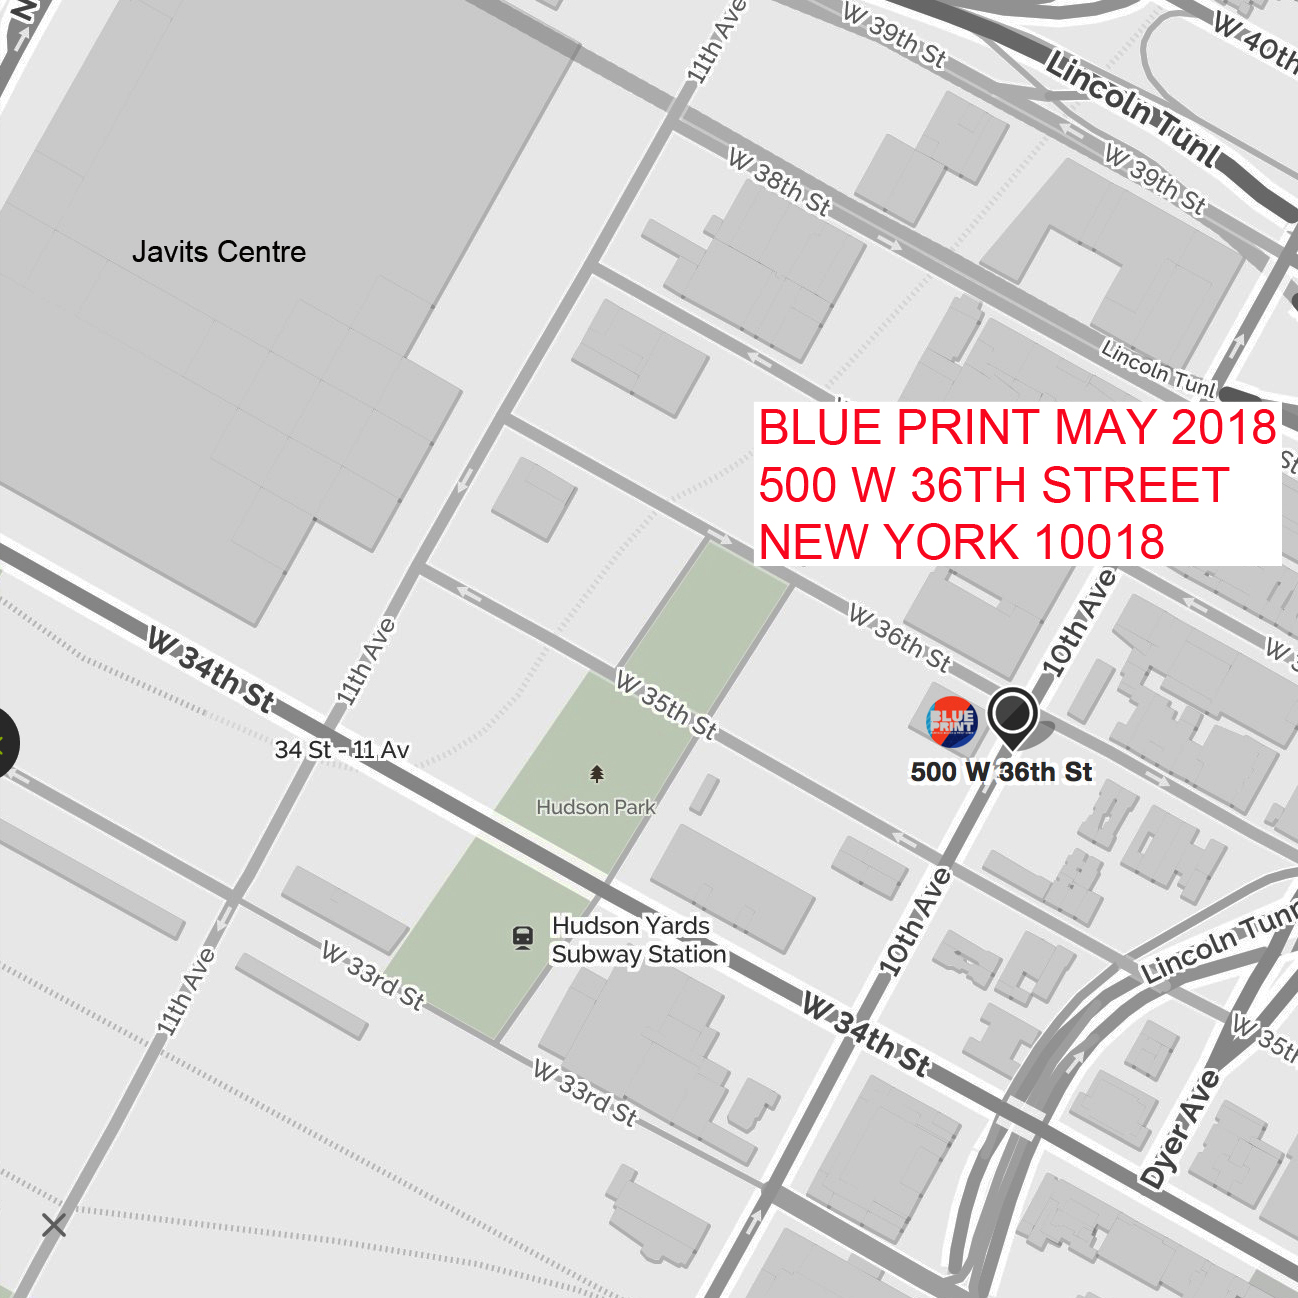 Blueprint show just to remind all the visitors to the shows this month that we are at a new venue this year it is at the hudson mercantile 500 west 36th street malvernweather Gallery